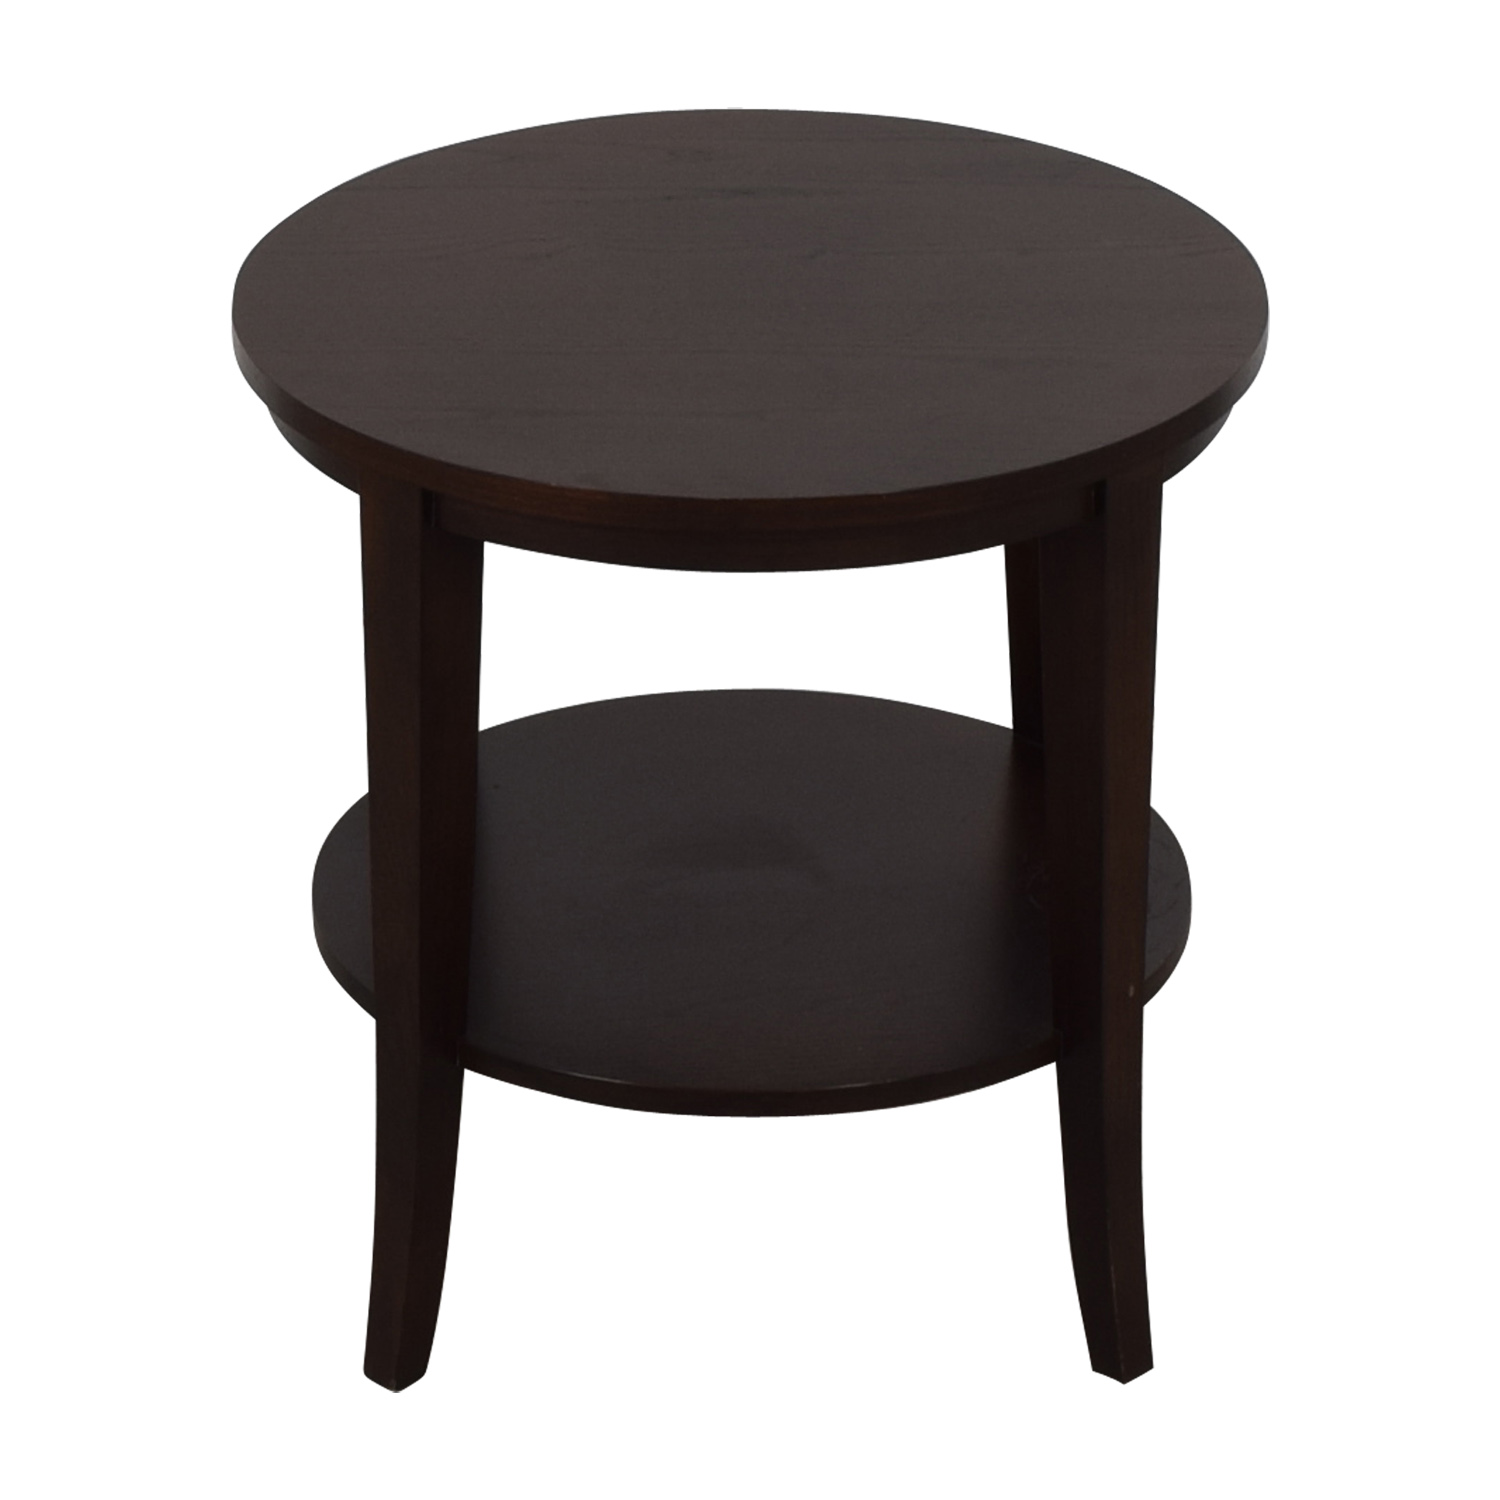 Ethan Allen Round Wood Accent Table End Tables